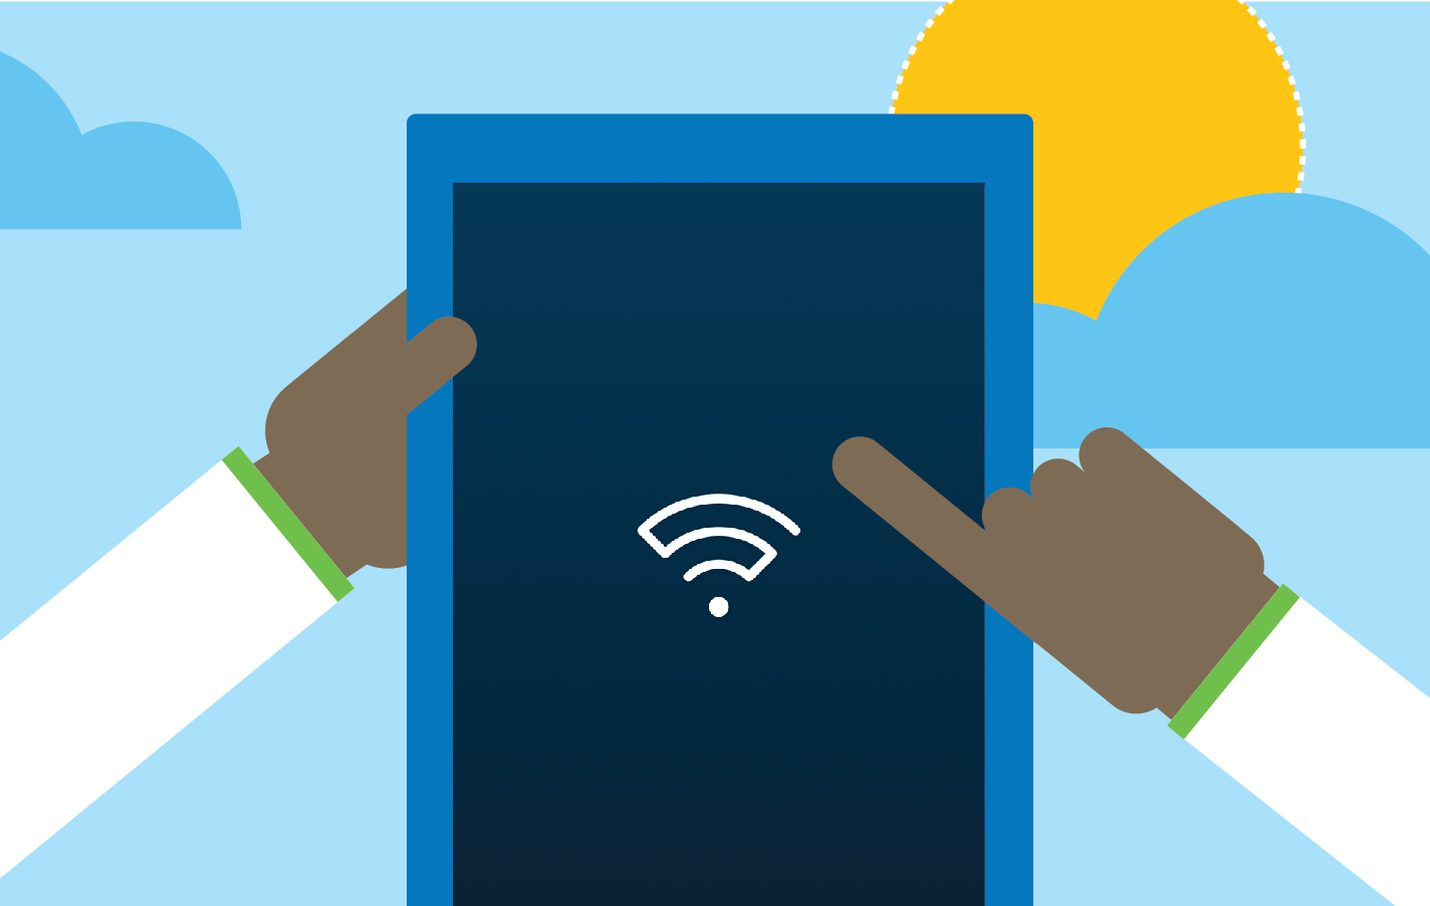 4 Ways Smart Wi-Fi Can Improve Online Life